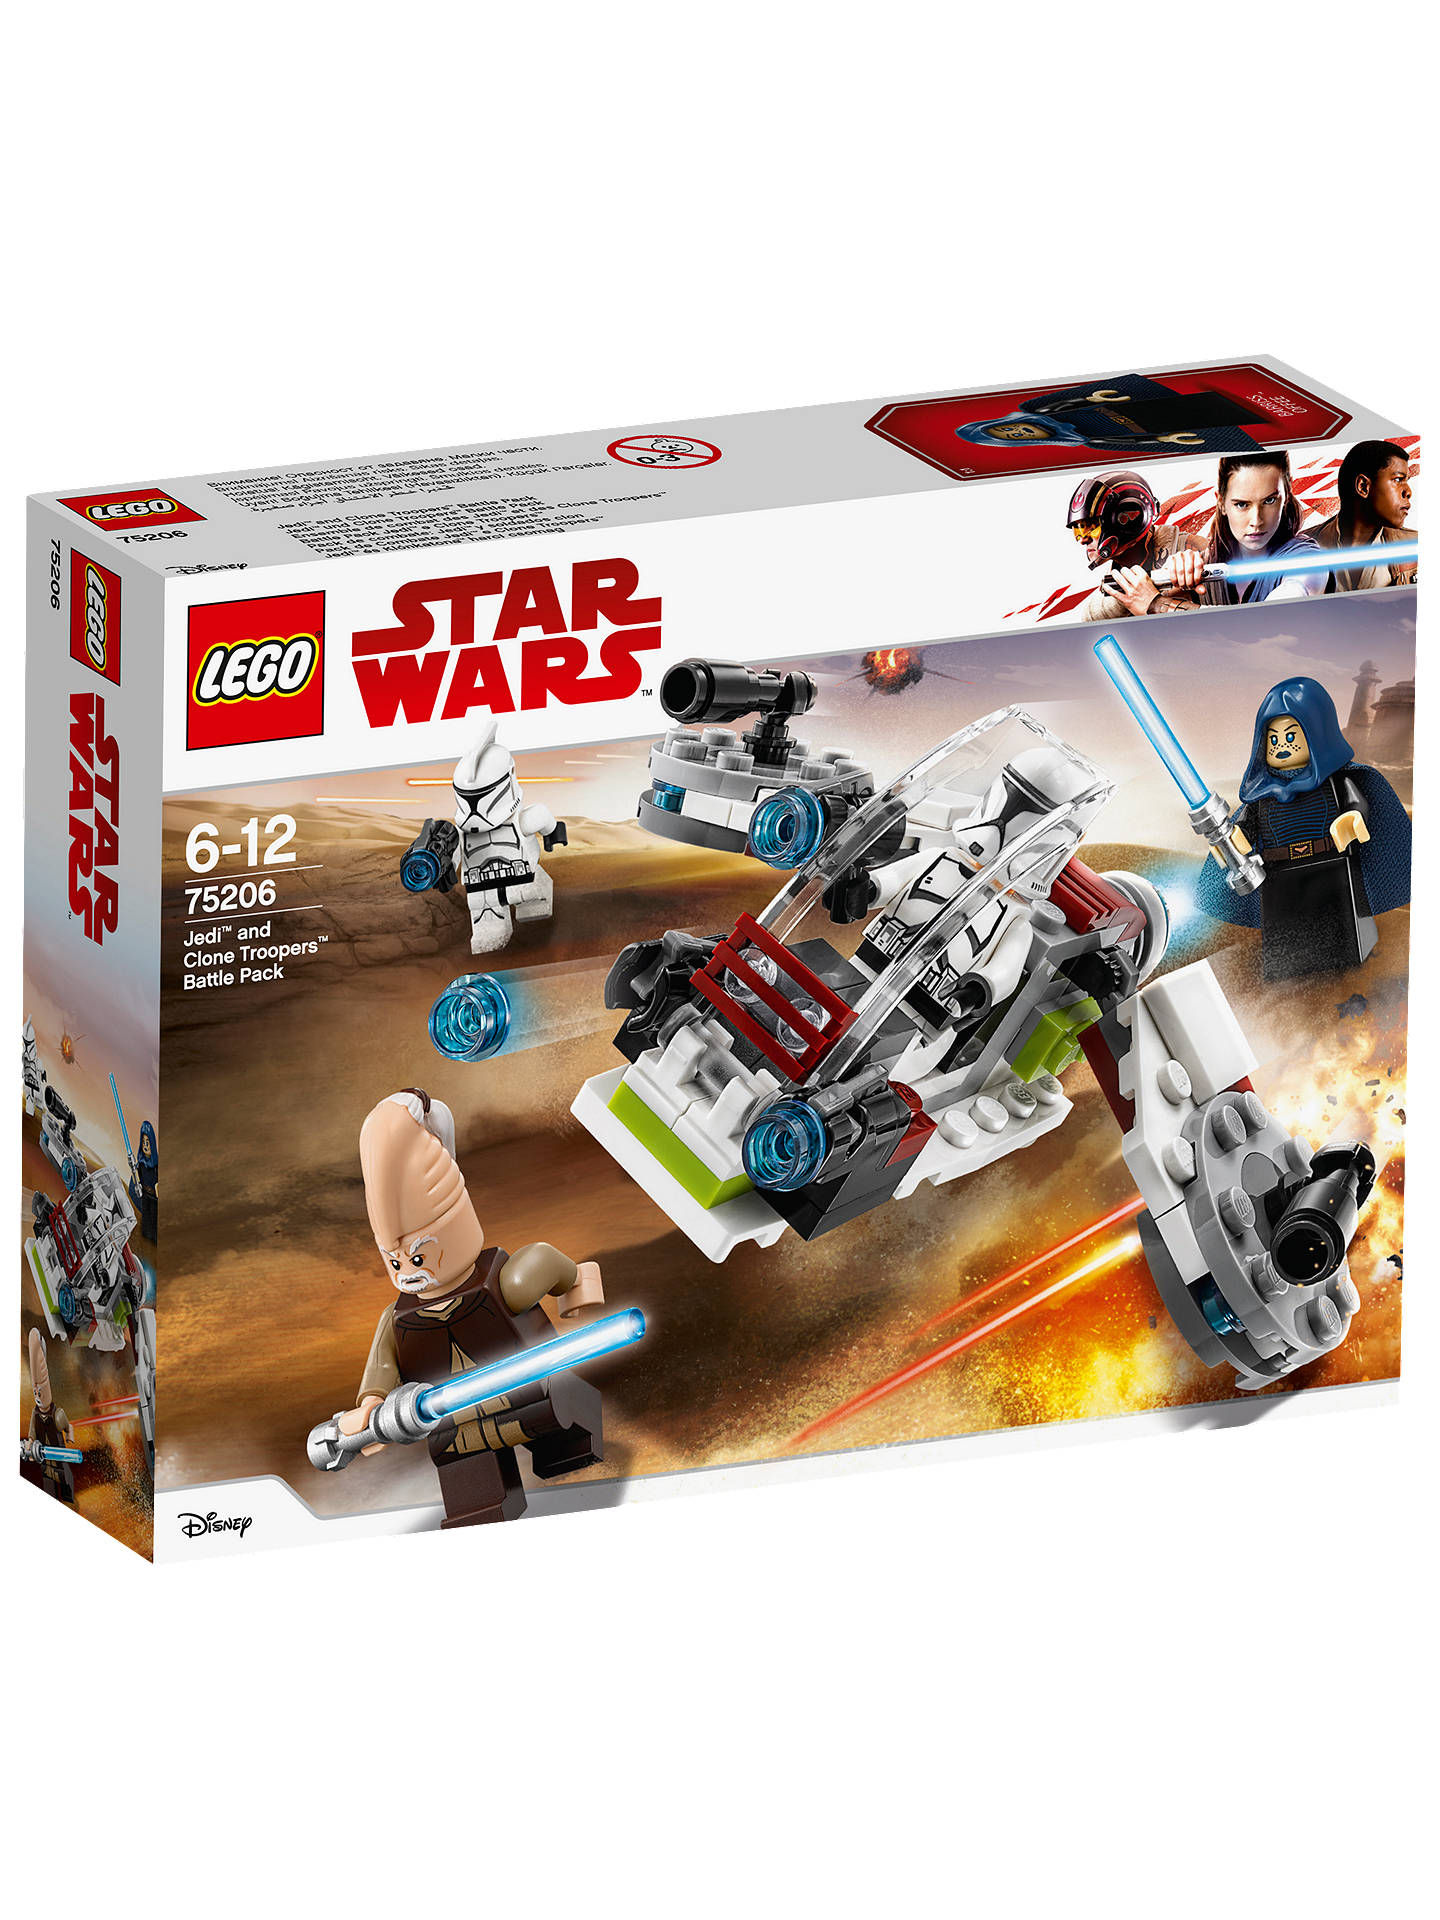 BuyLEGO Star Wars Solo  A Star Wars Story 75206 Jedi and Clone Troopers  Battle Pack ... 37a73b63e